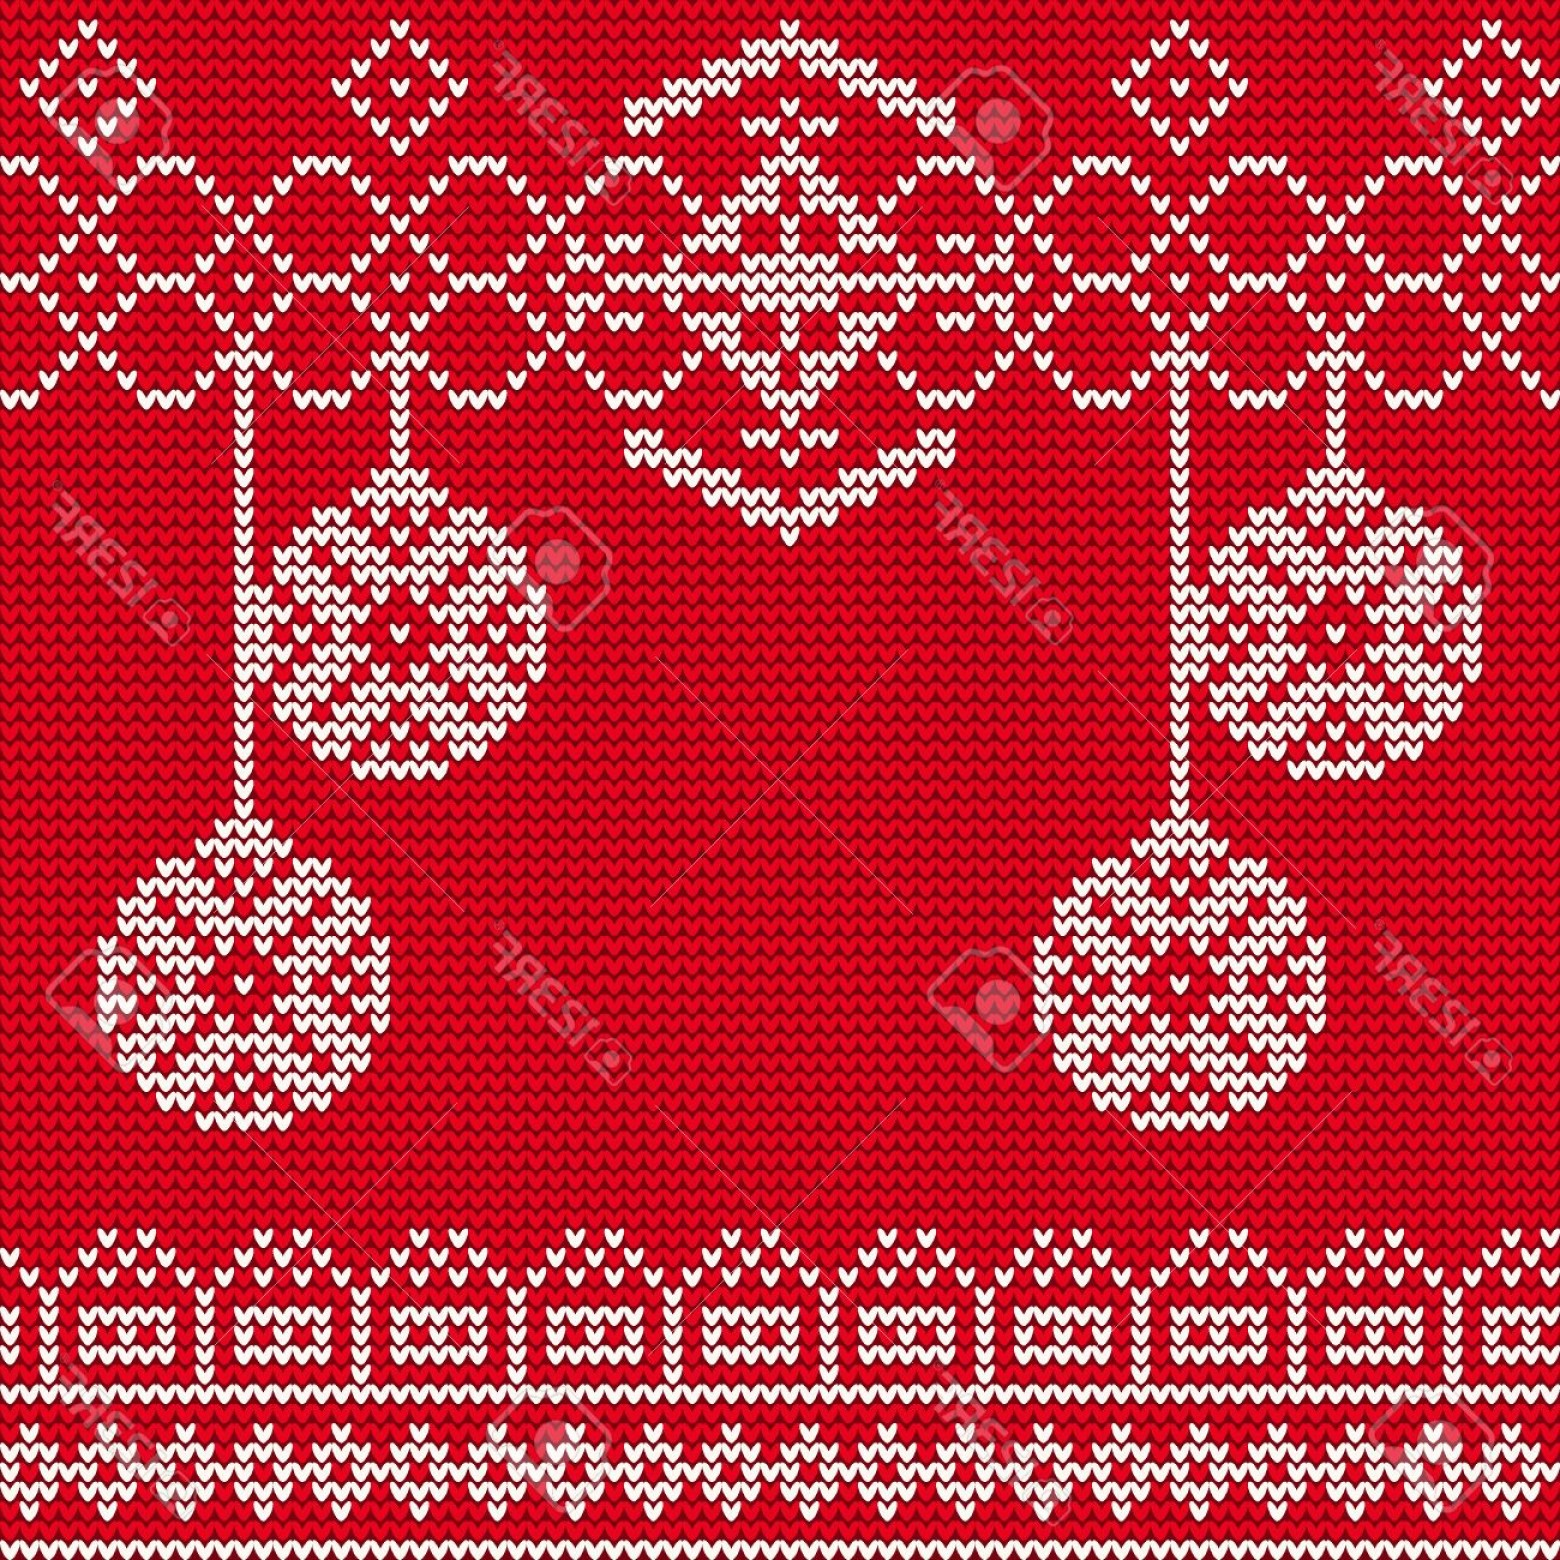 Christmas Sweater Design Vector: Photostock Vector Illustration Of Ugly Sweater Seamless Pattern For Design